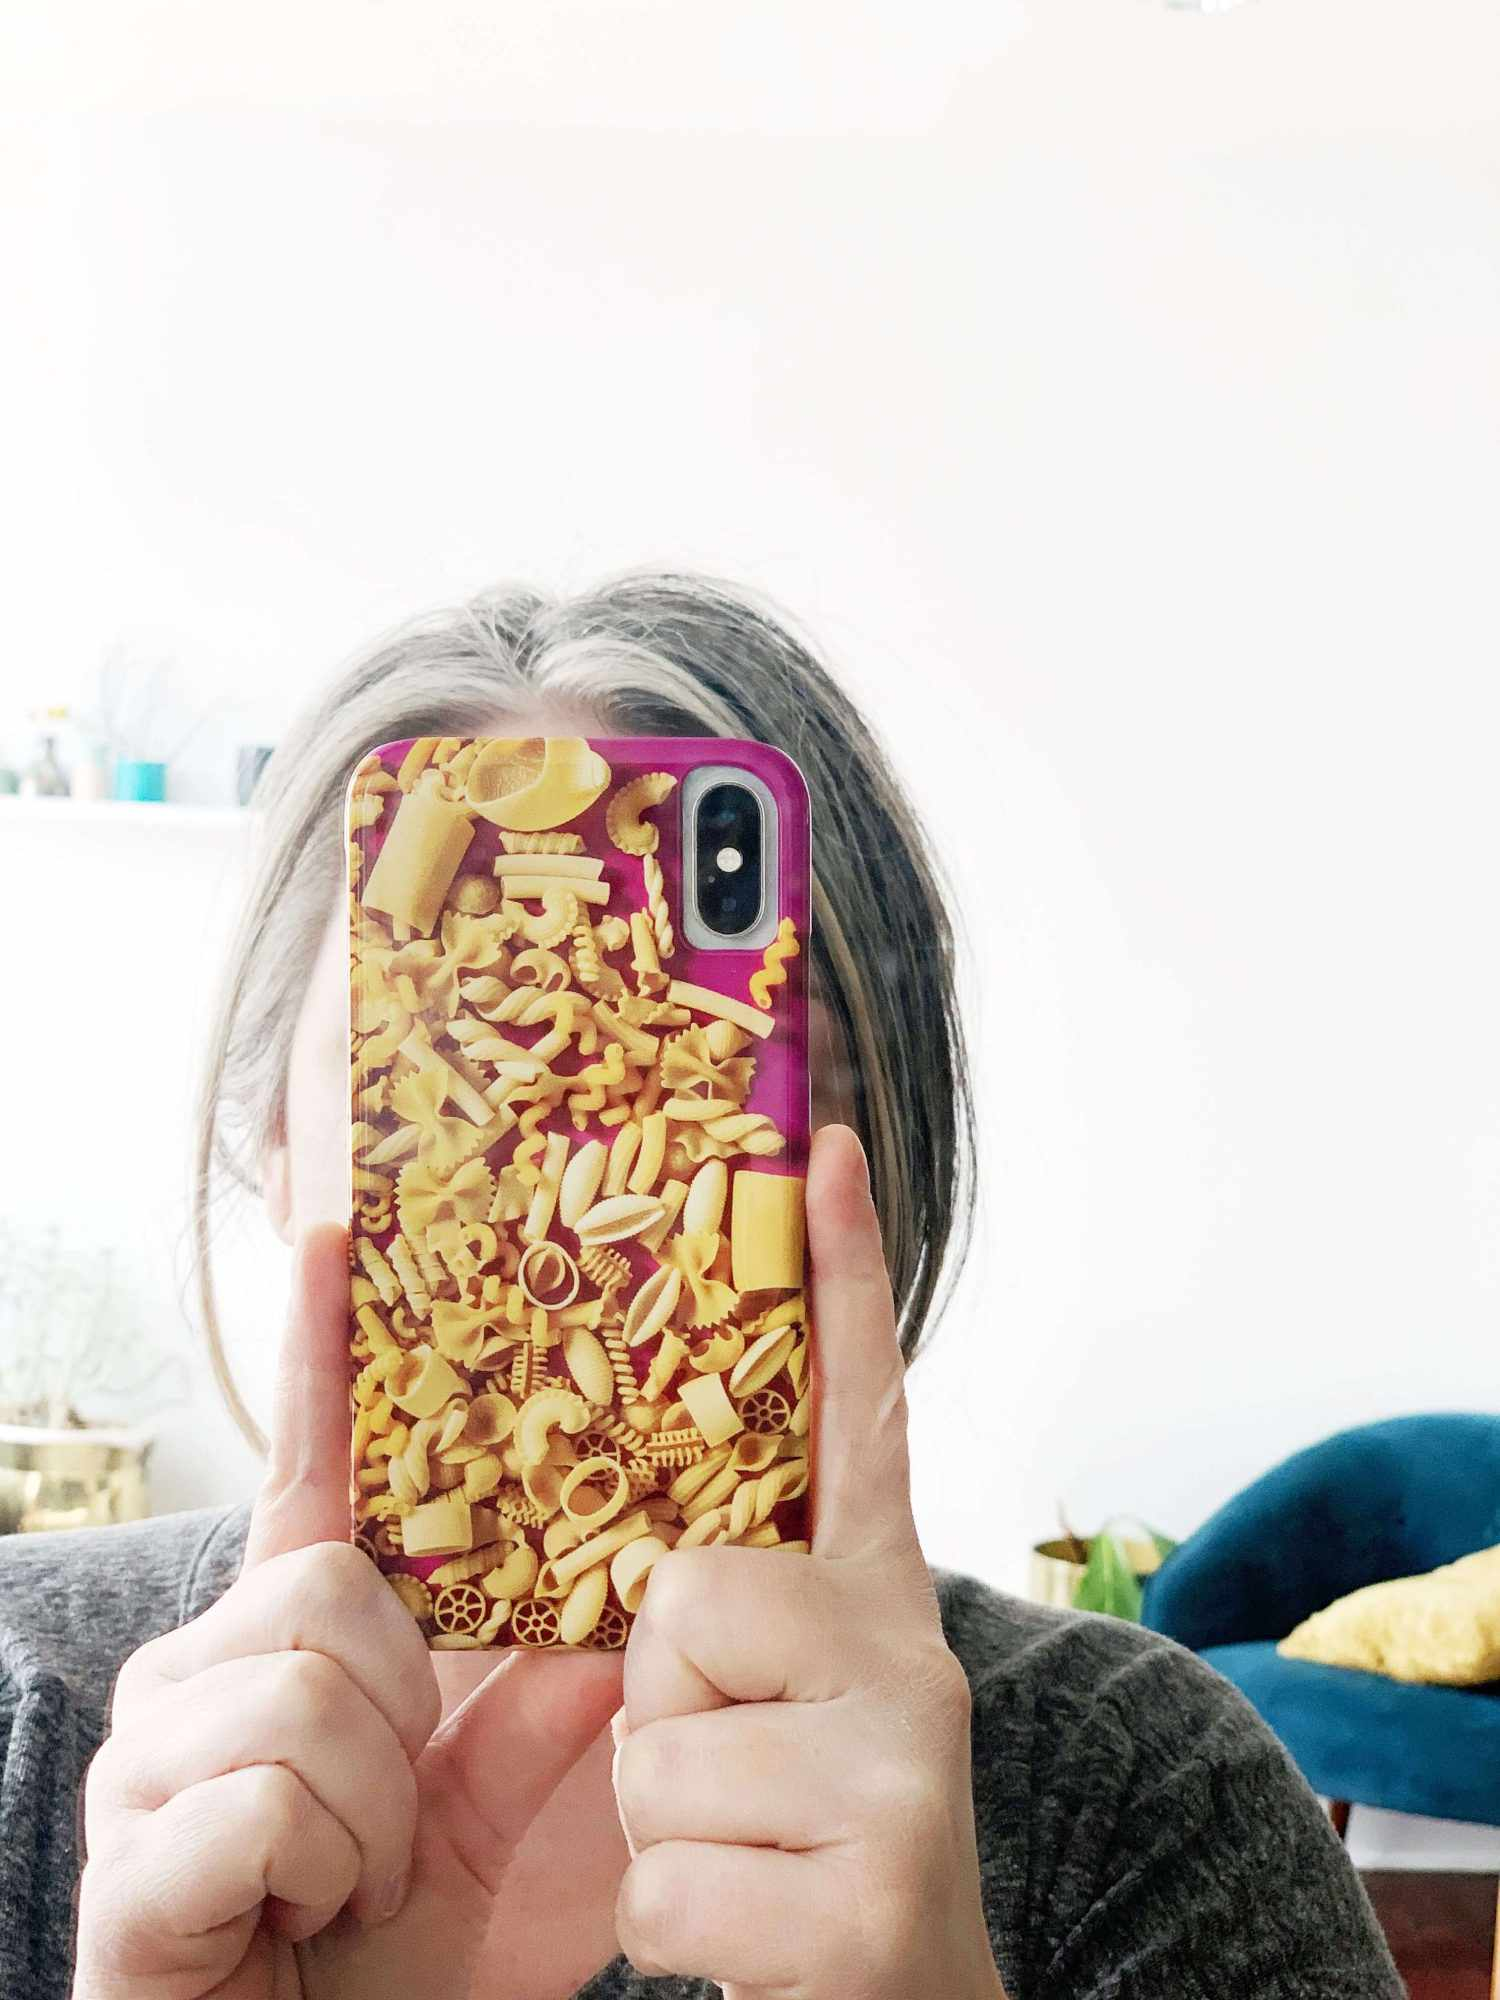 Example of pasta themed phone casing